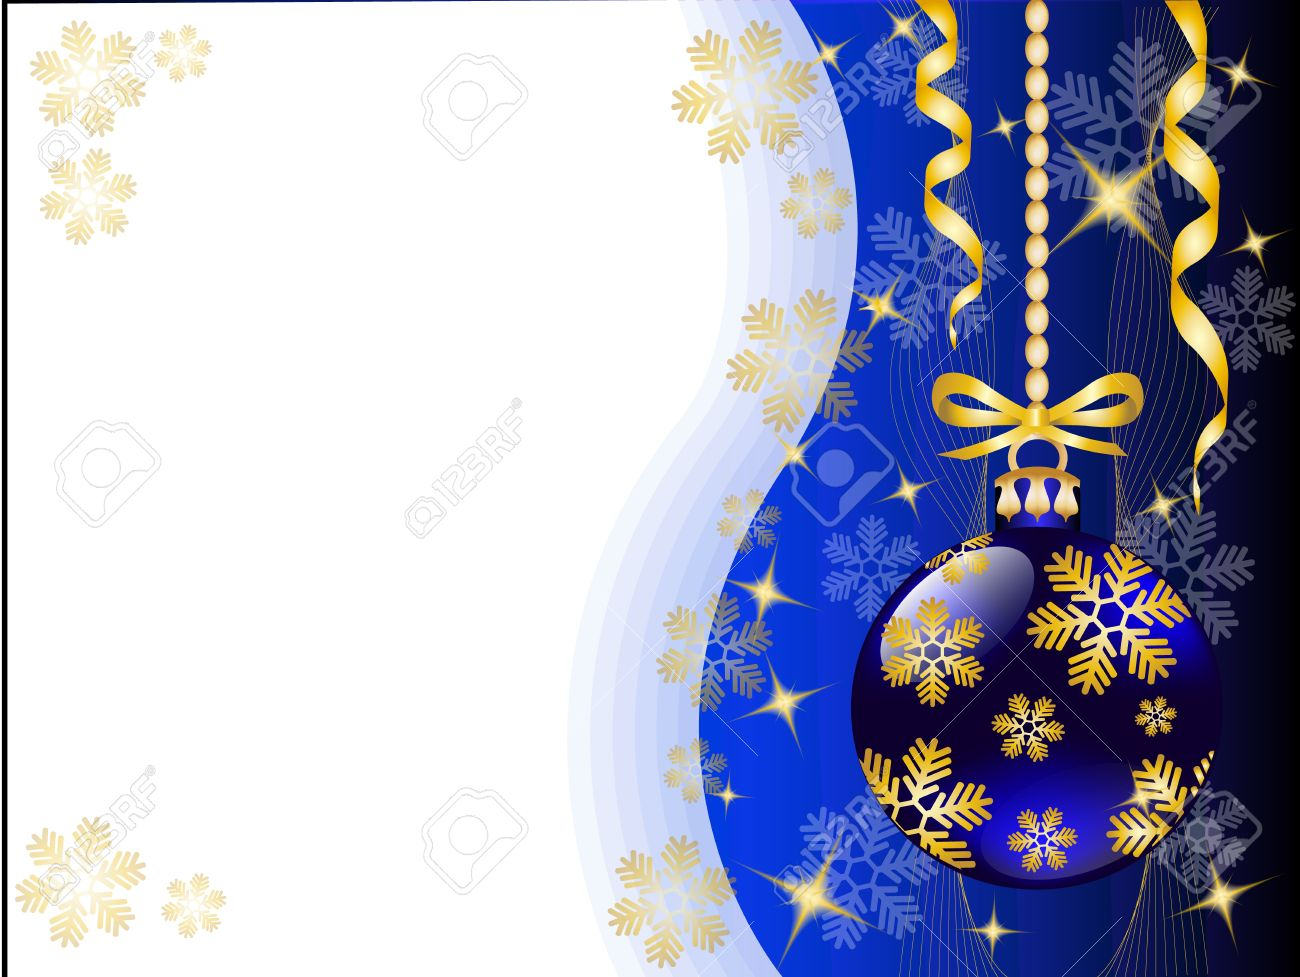 Christmas Background With Shiny Blue Christmas Toys And Gold